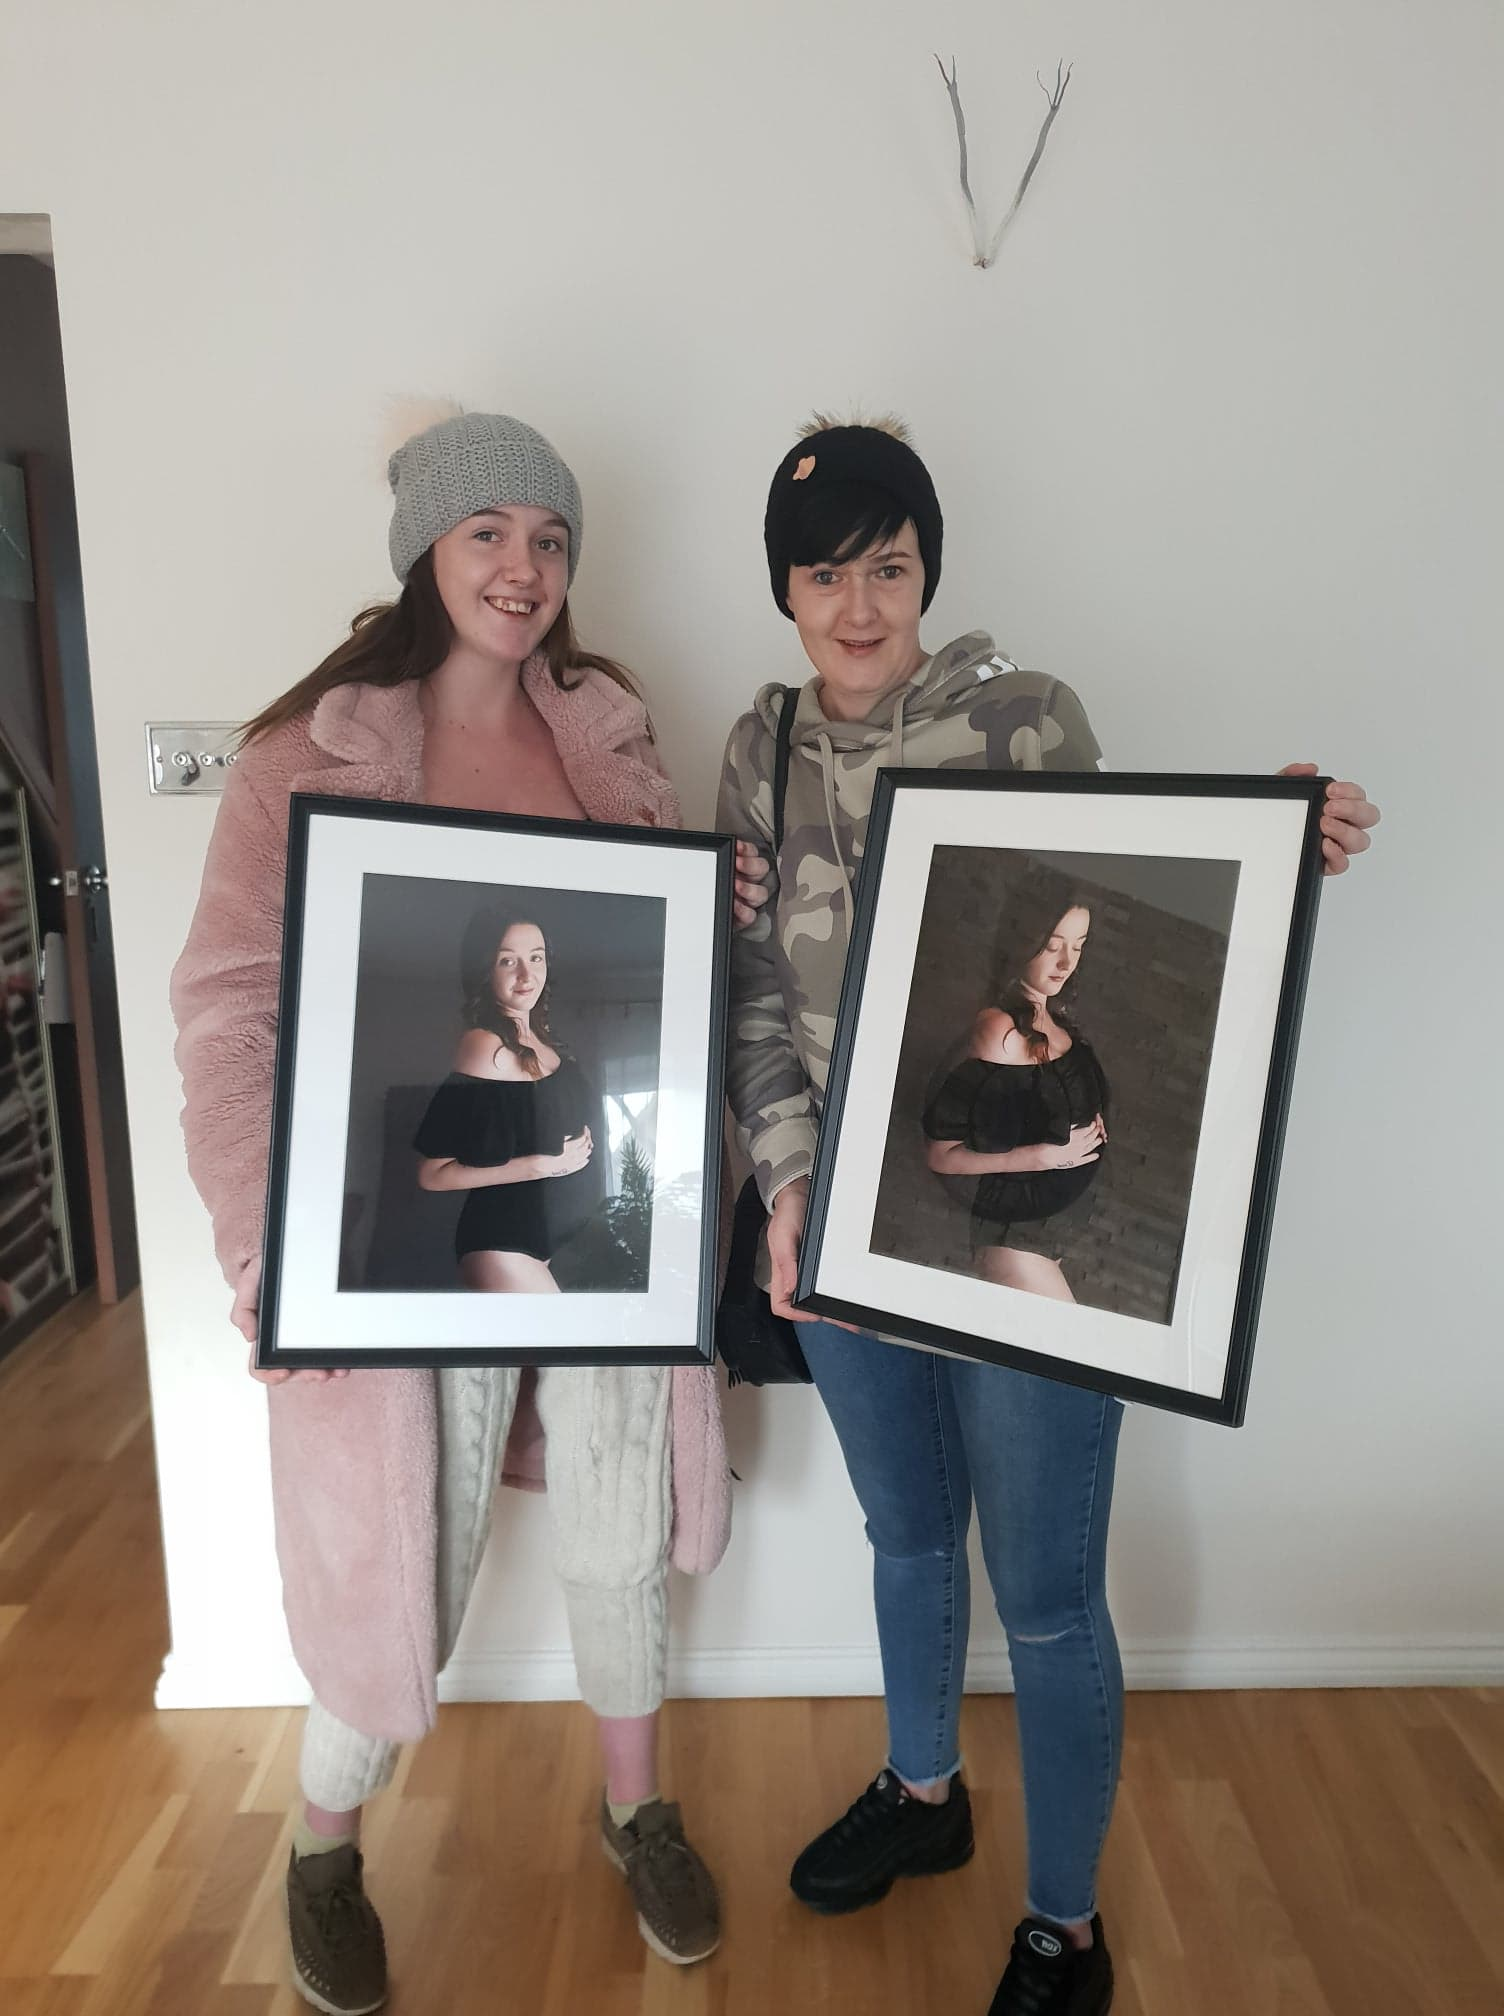 pregnancy photographer north east london, before-after, mum and daughter collecting photo products after the session